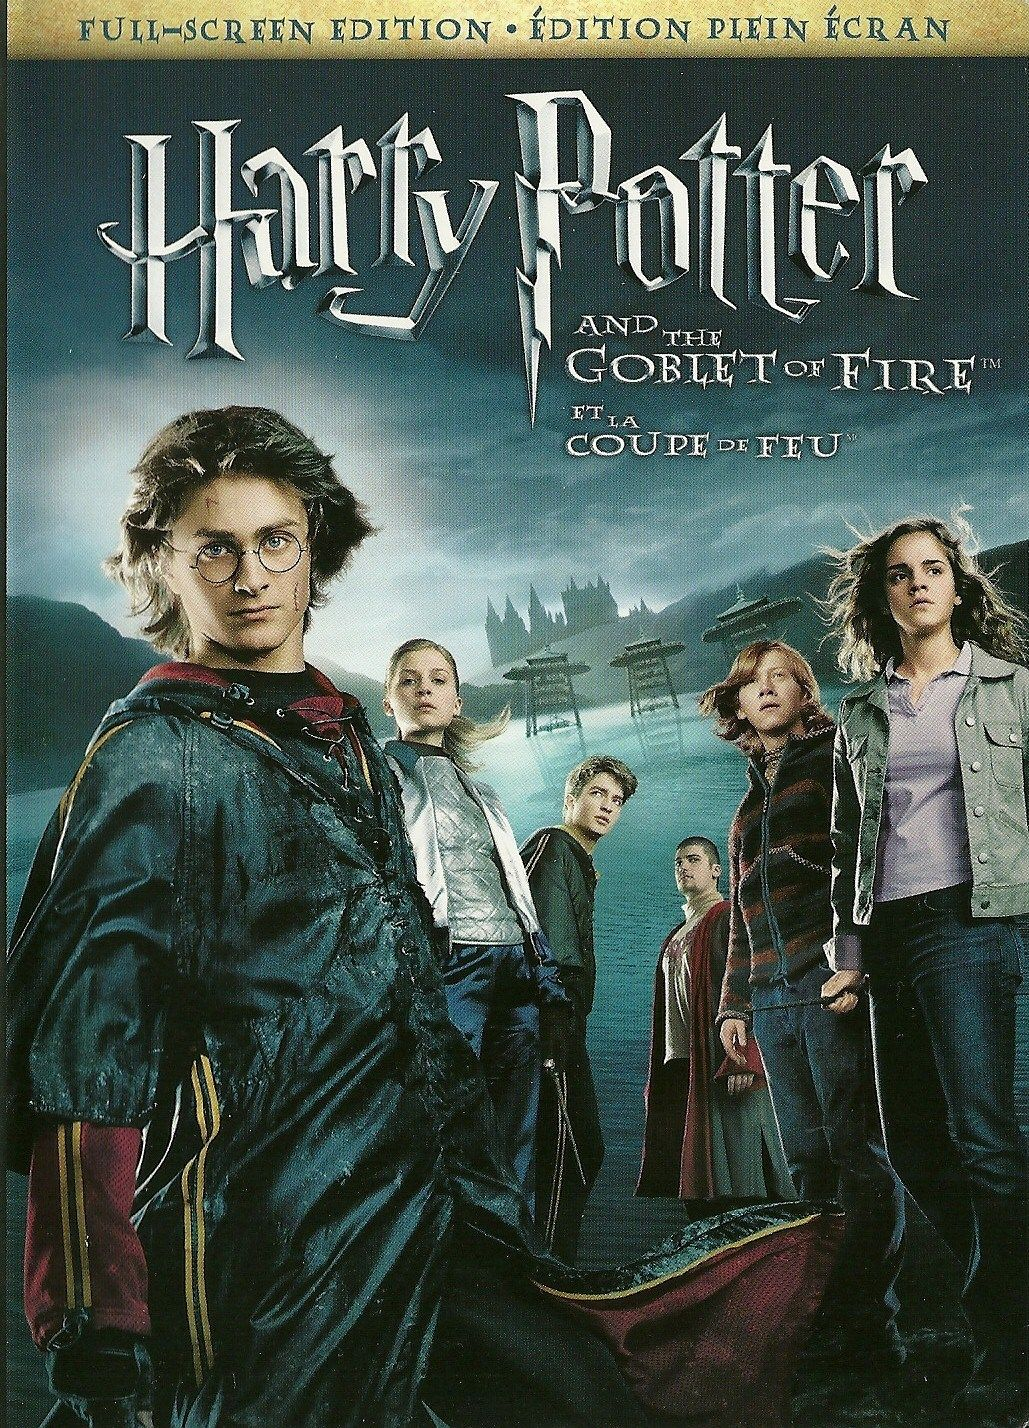 Harry Potter And The Goblet Of Fire Dvd Daniel Radcliffe Harry Potter Poster Harry Potter Film Feuerkelch